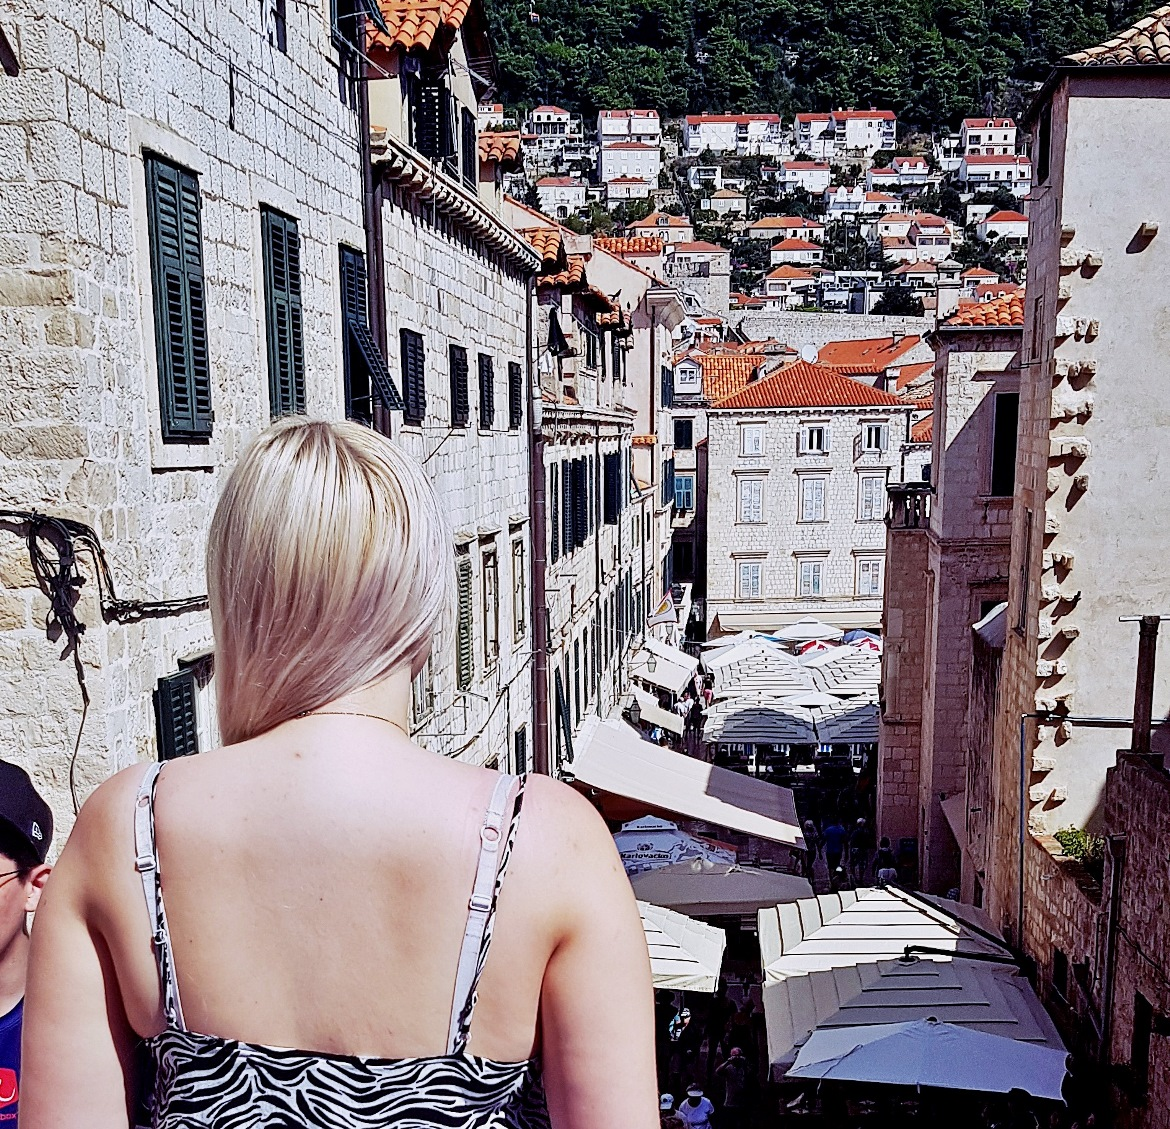 The Shame Steps from Game of Thrones - Sightseeing in Dubrovnik, Croatia - Top Travel Tips by BeckyBecky Blogs